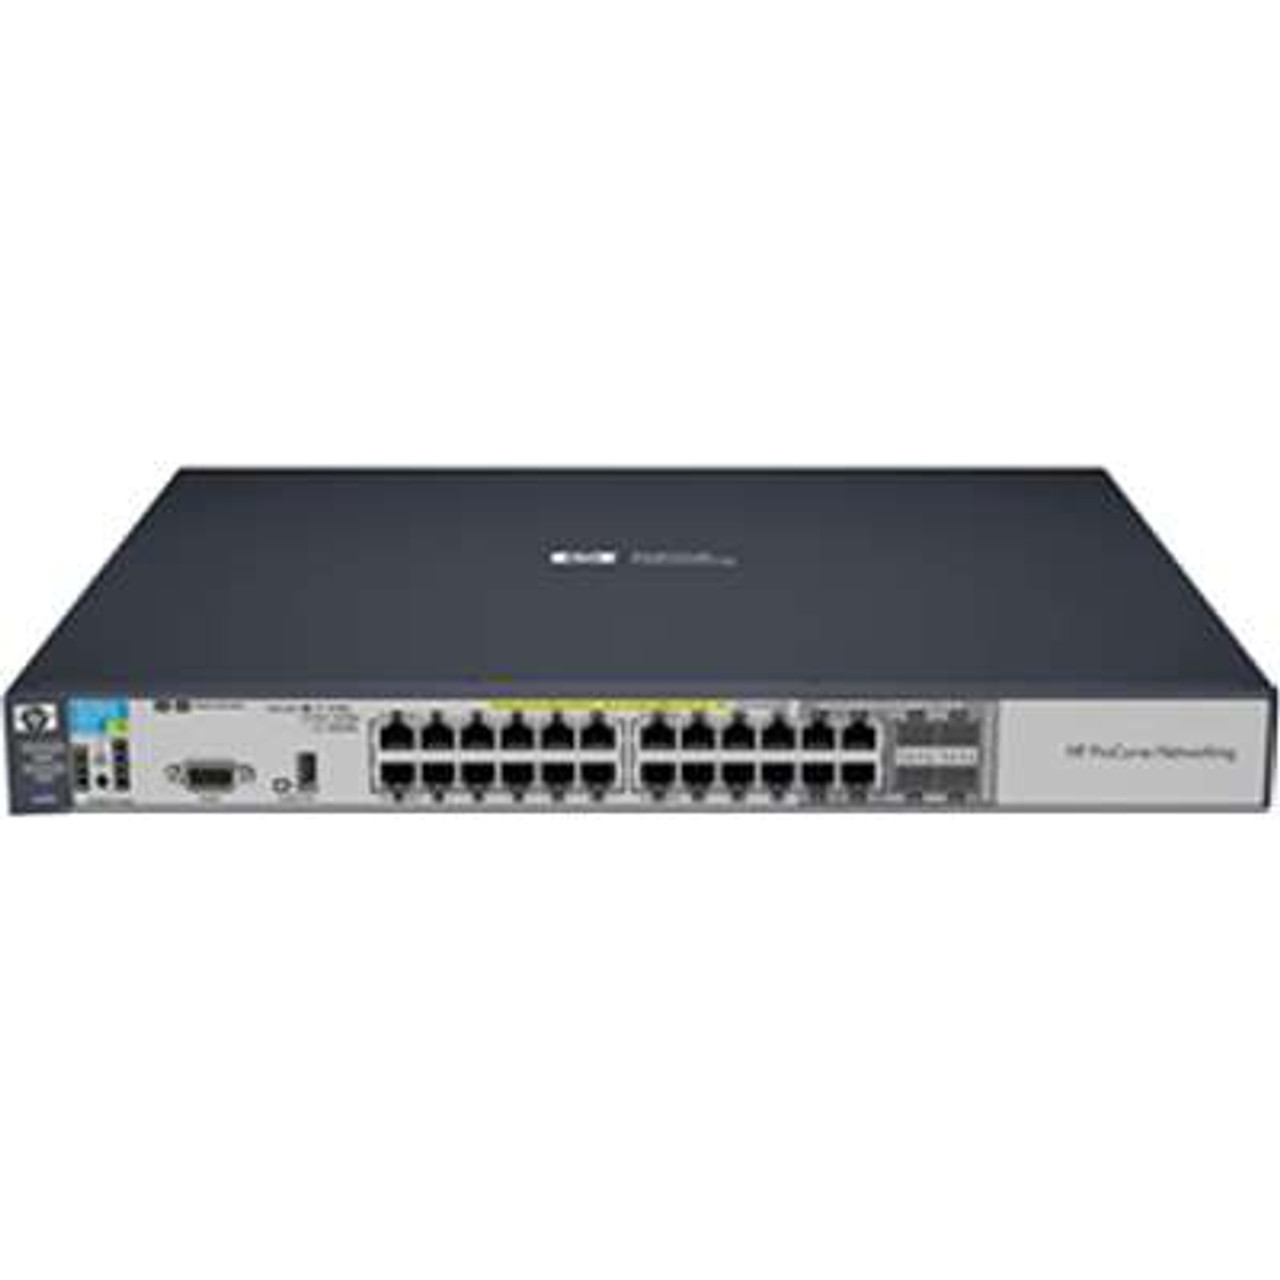 HP J9471A 3500 Series HPE 3500-24-PoE 20-Port Fast Ethernet 4-Port SFP  Switch